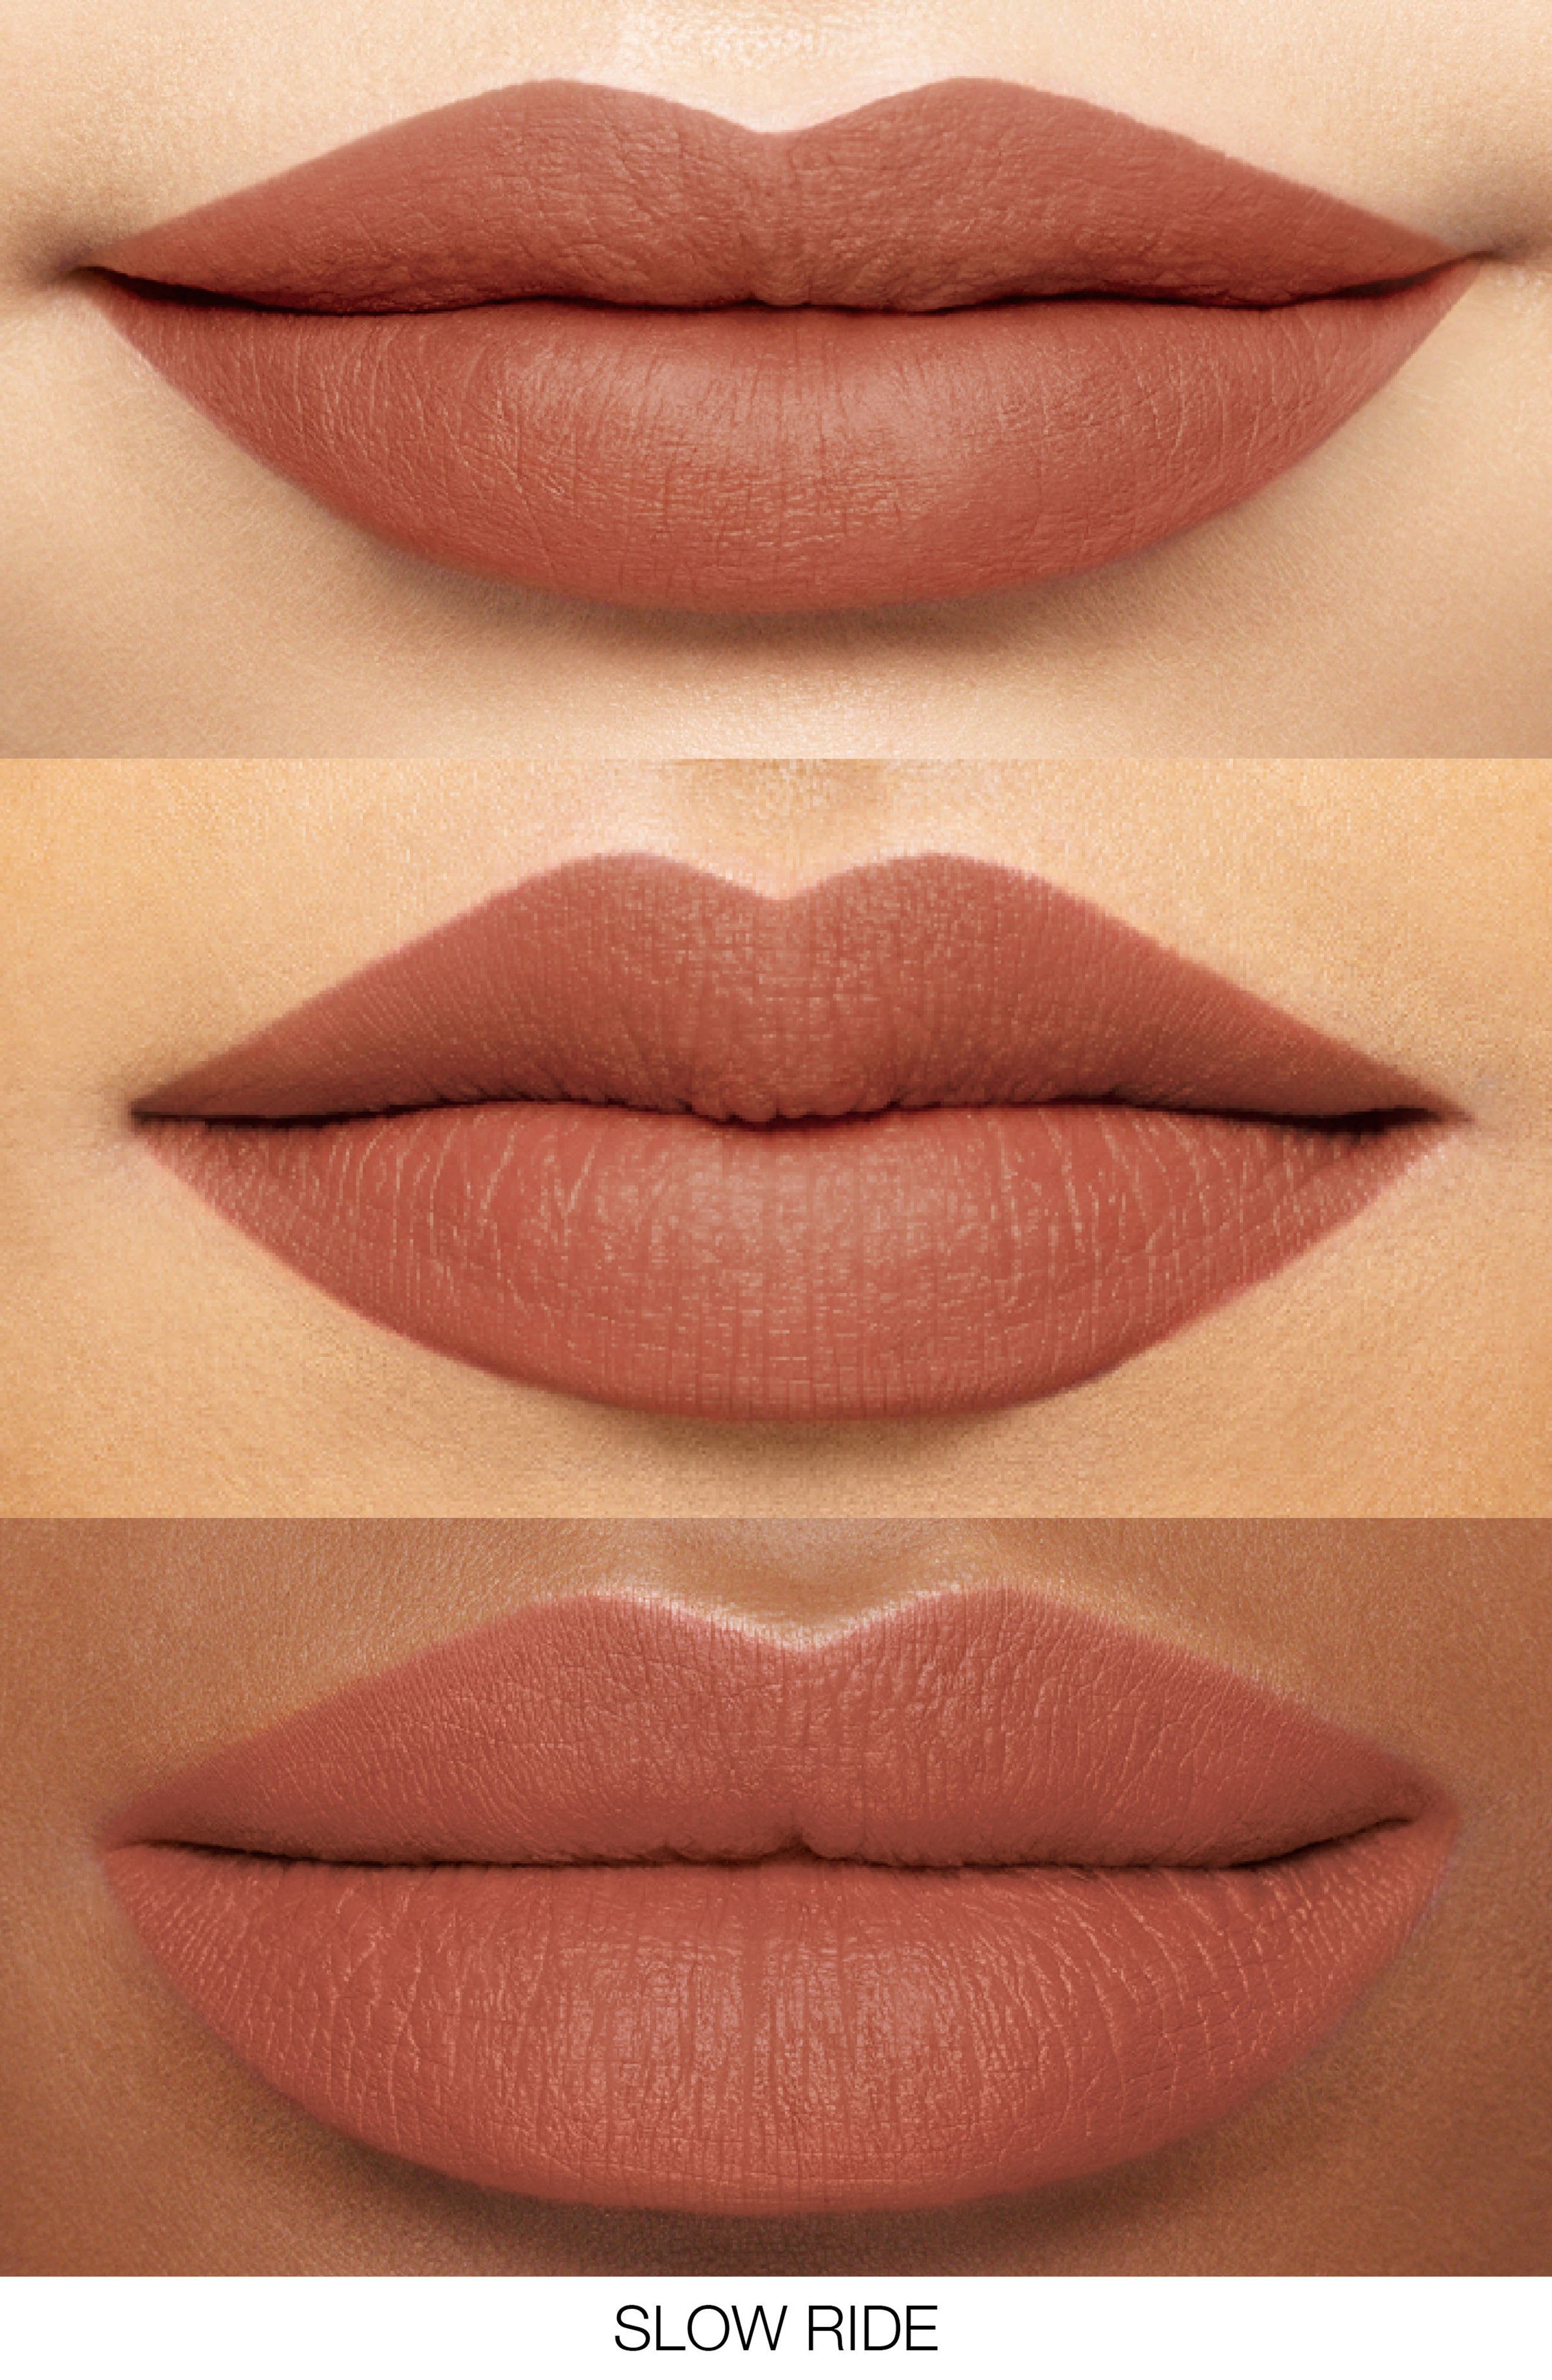 NARS, Powermatte Lip Pigment, Alternate thumbnail 2, color, SLOW RIDE